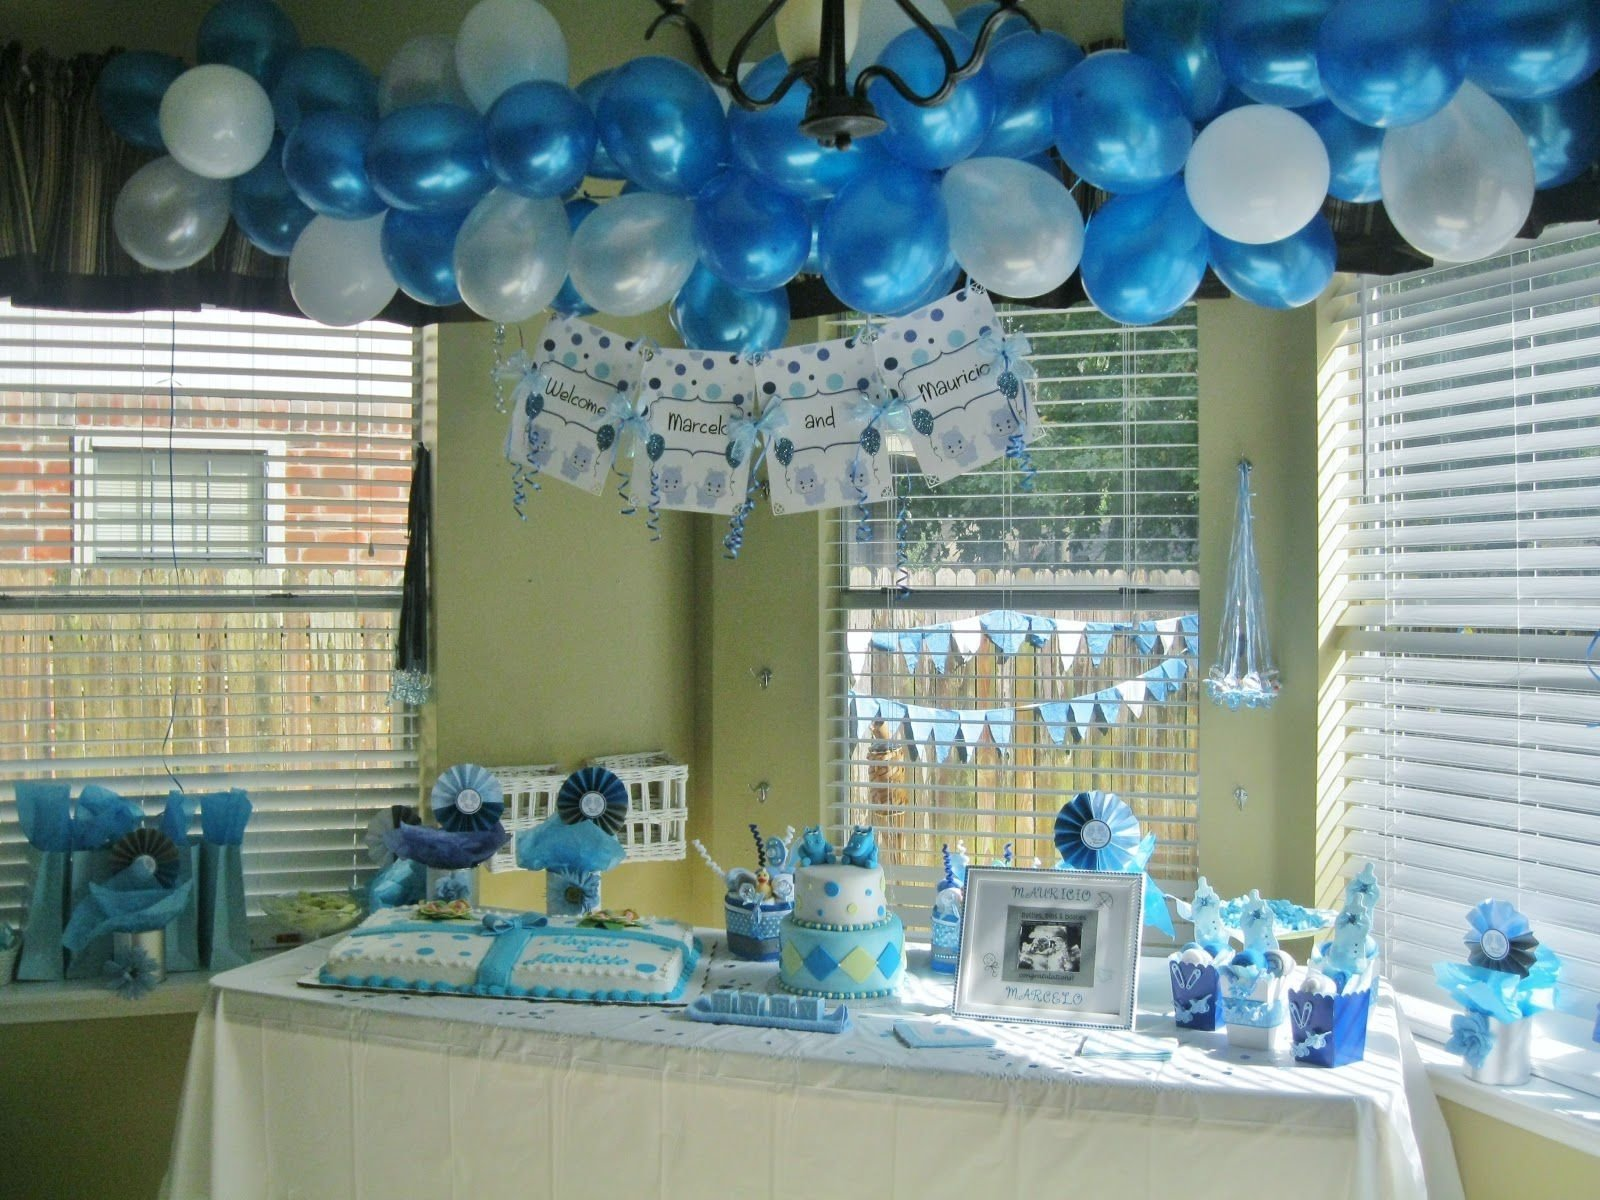 10 Nice Ideas For A Boy Baby Shower christmas silver decorations delightful blue table window attractive 1 2021